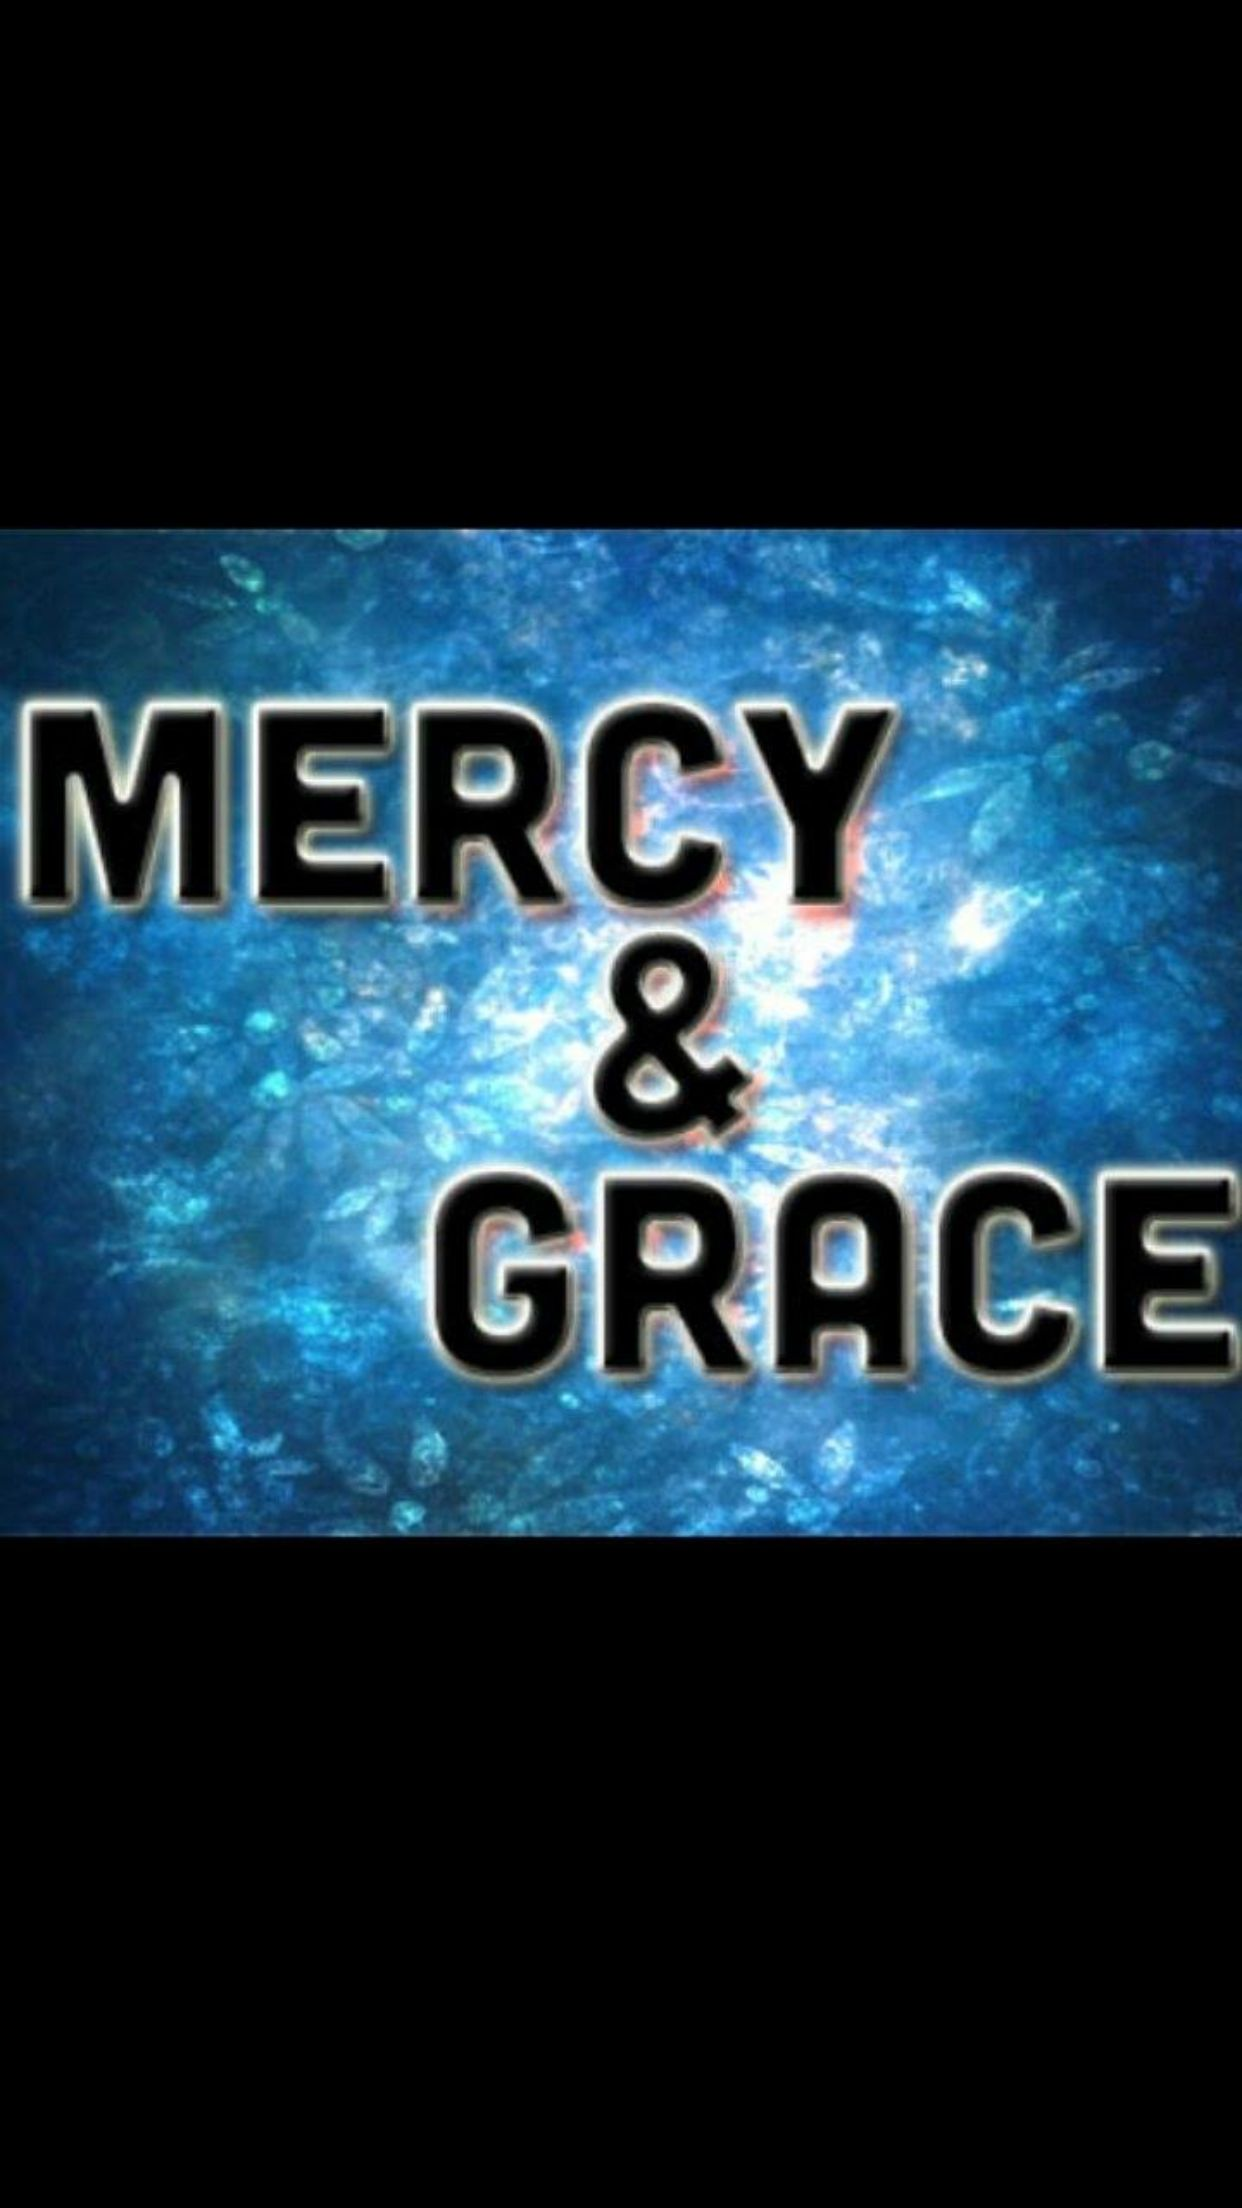 Psalm 119:29-33 Put false ways far from me and graciously teach me your law! I have chosen the way of faithfulness; I set your rules before me. I cling to your testimonies, O Lord; let me not be put to shame! I will run in the way of your commandments when you enlarge my heart! Teach me, O Lord, the way of your statutes; and I will keep it to the end.1 John 2:18 Children, it is the last hour, and as you have heard that antichrist is coming, so now many antichrists have come. Therefore we…